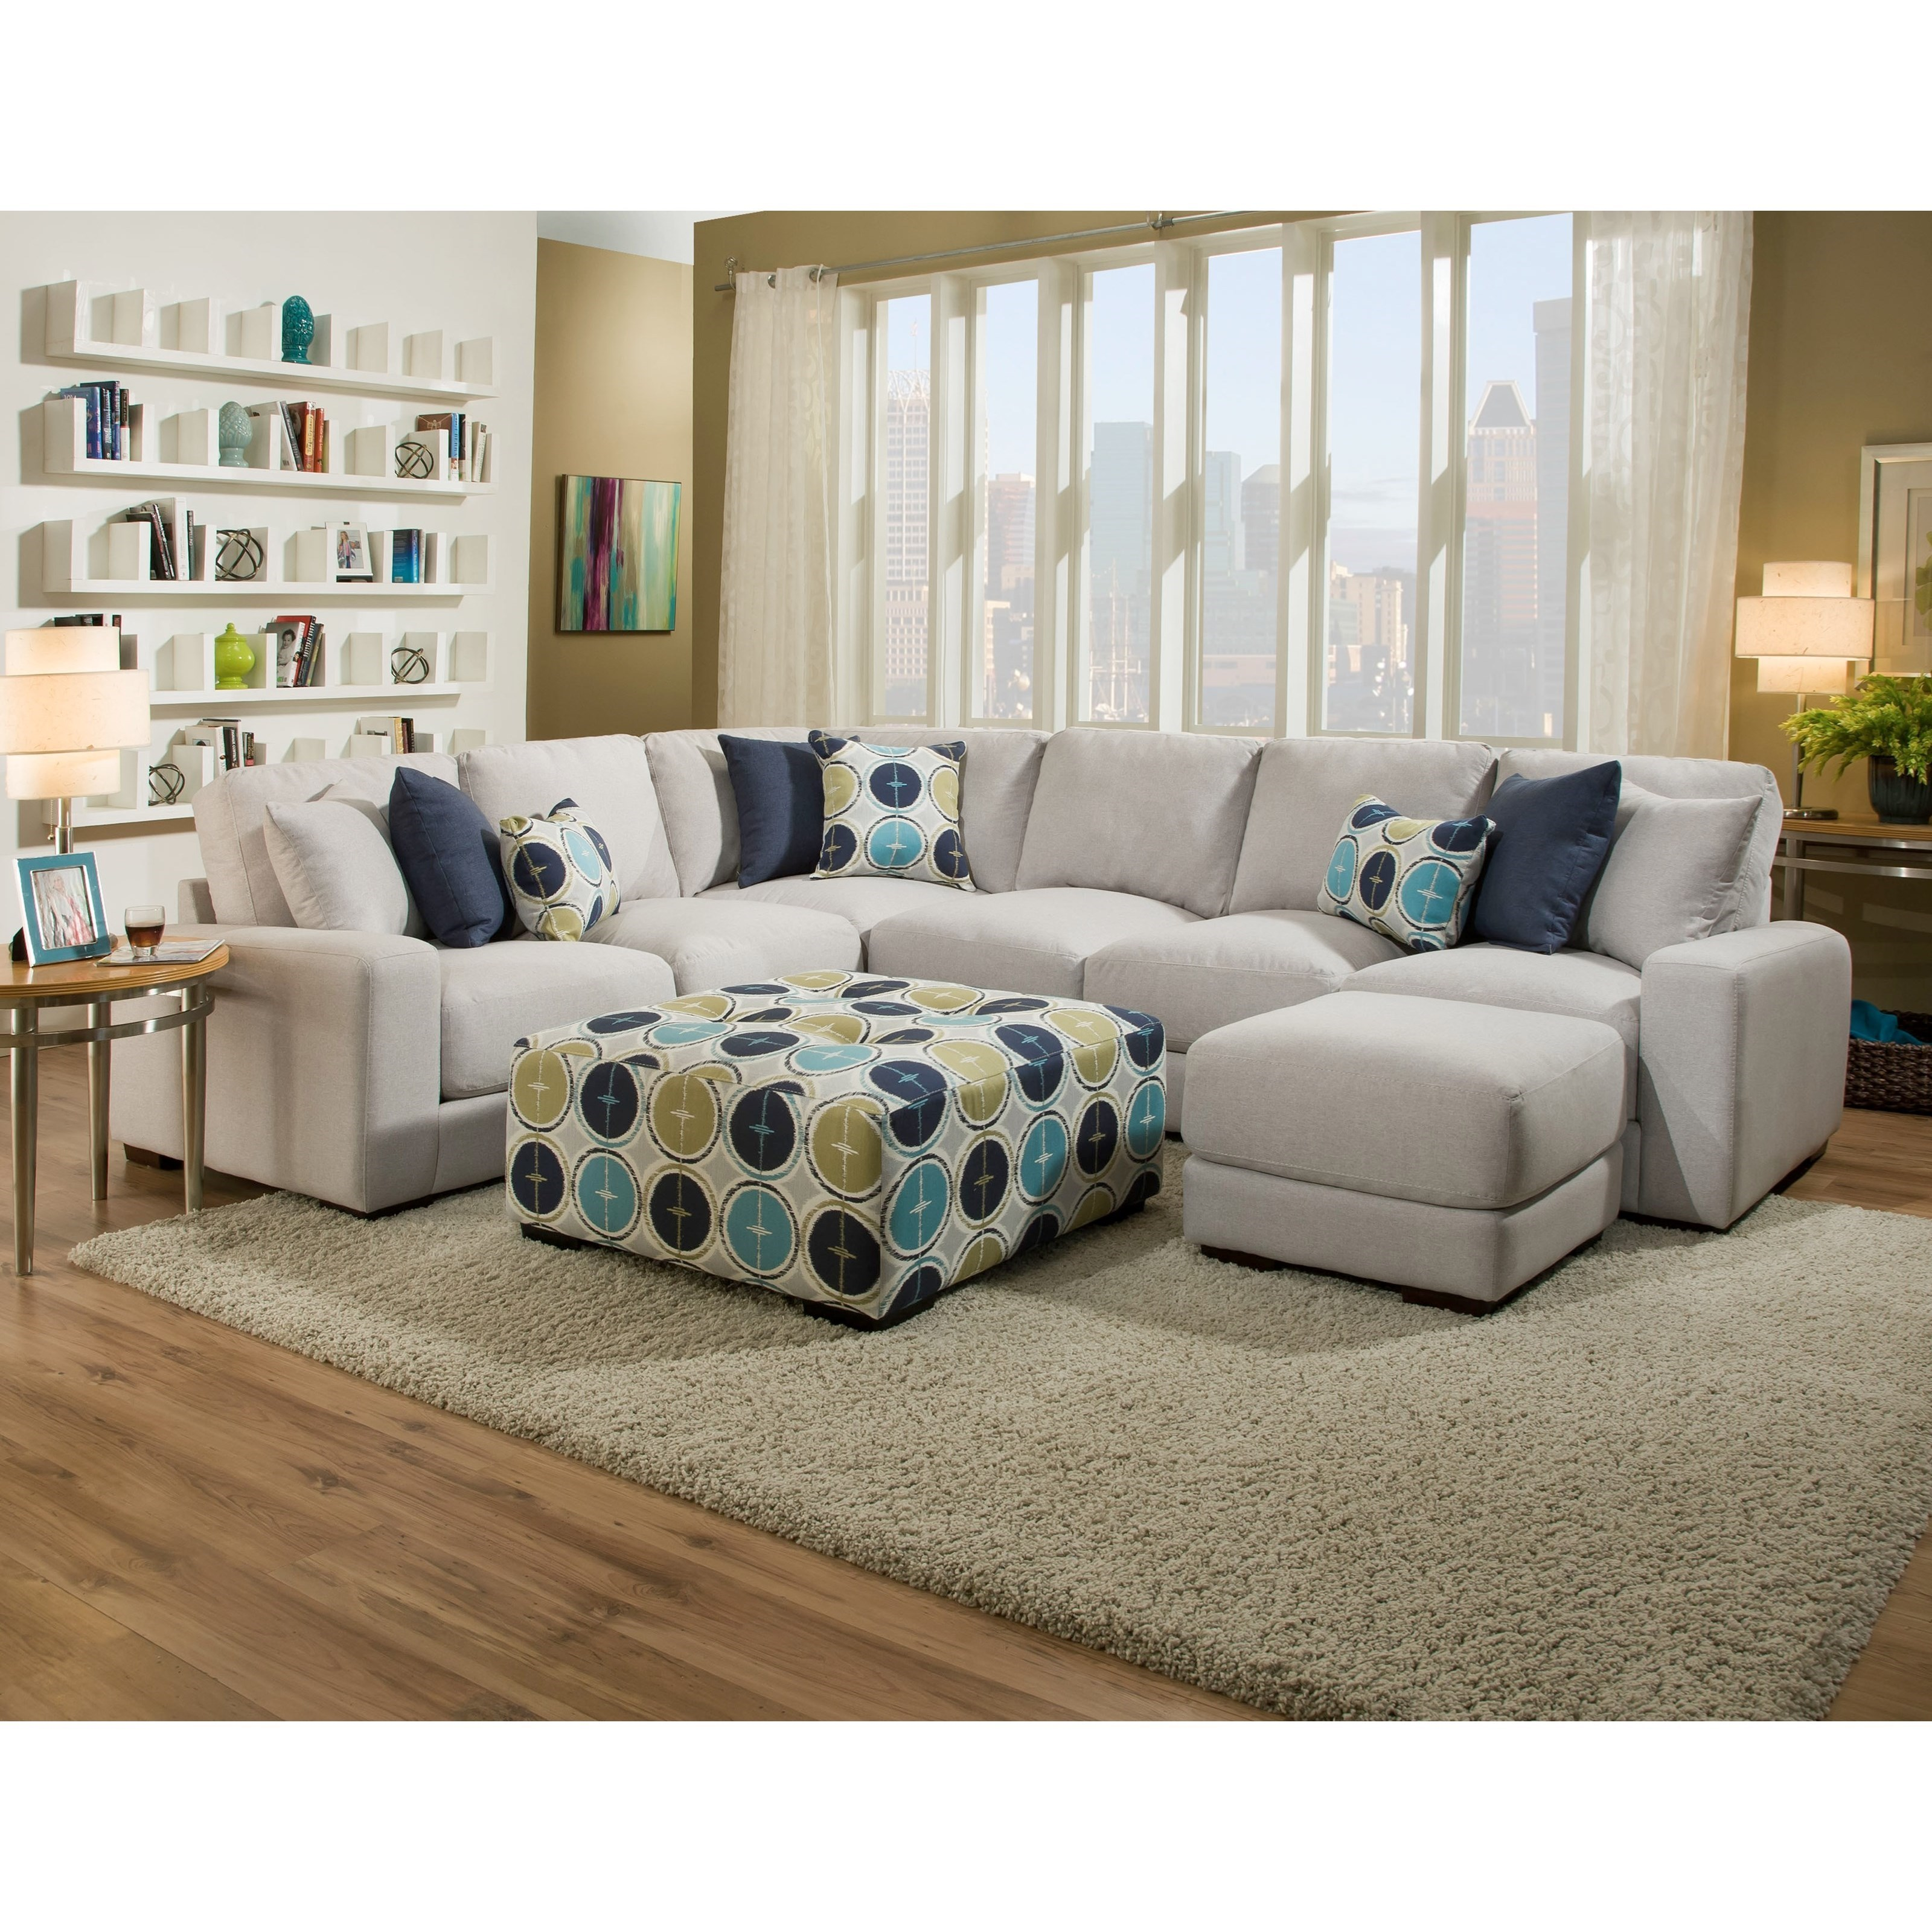 572 reclining sectional sofa with chaise by franklin rattan black cushions brayden thesofa